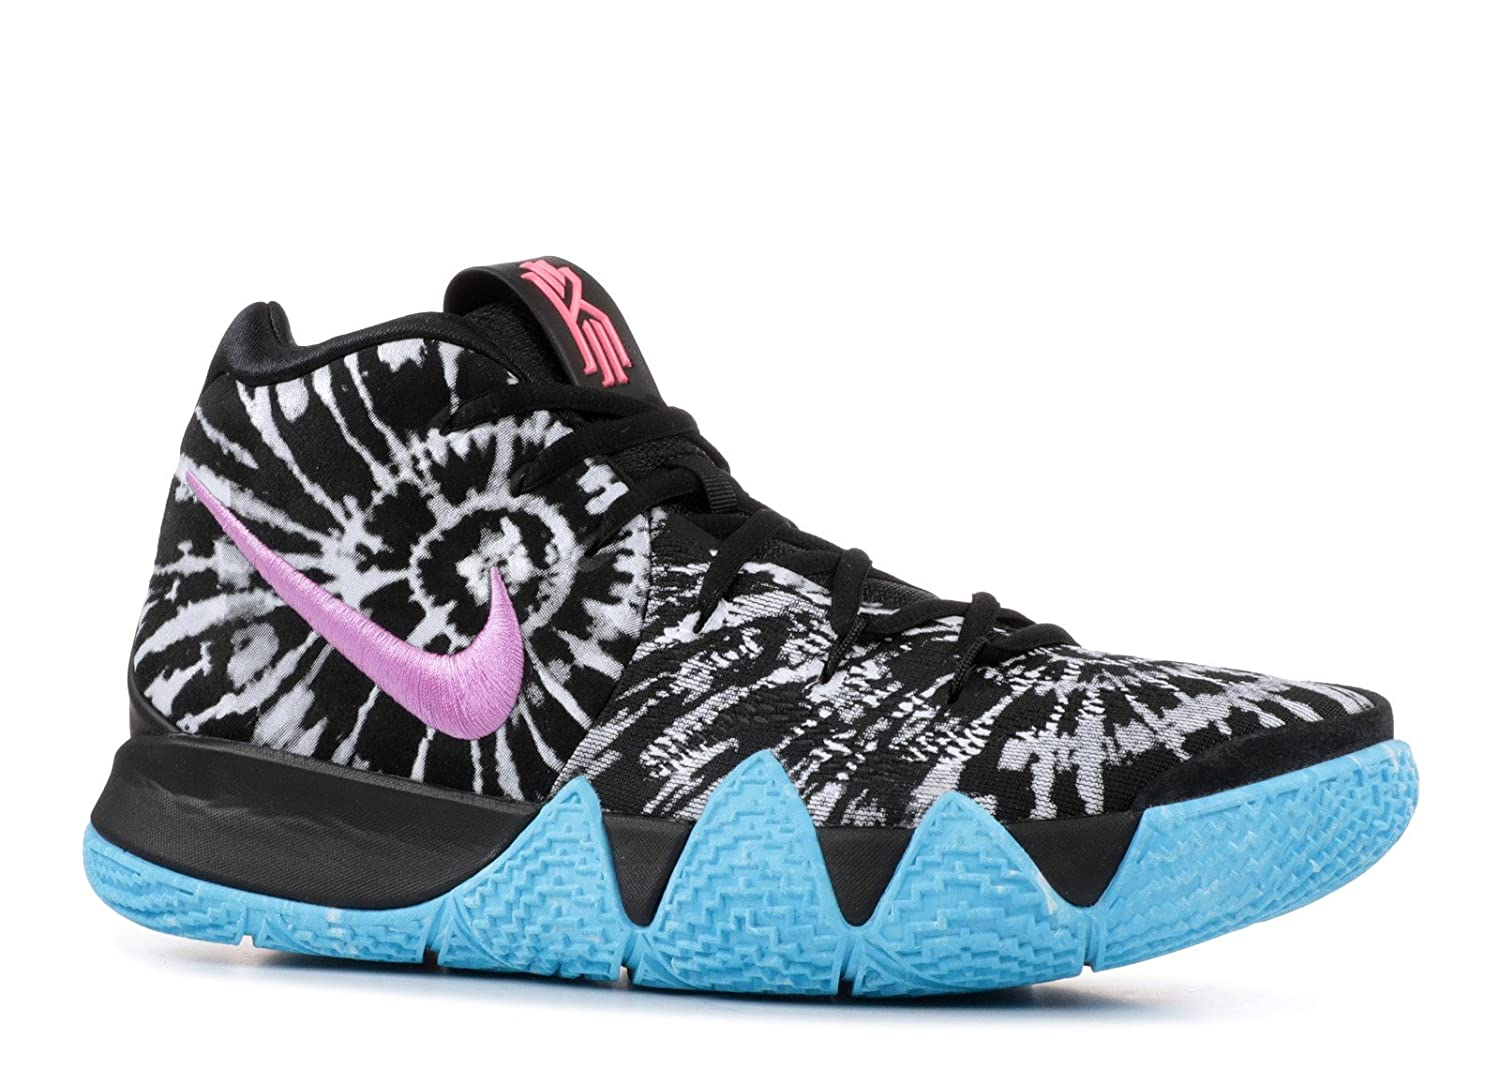 buy popular da93e c6f5c Nike Kyrie 4 AS All Star Tie Dye Irving AQ8623-001 Black/White Men's Shoes